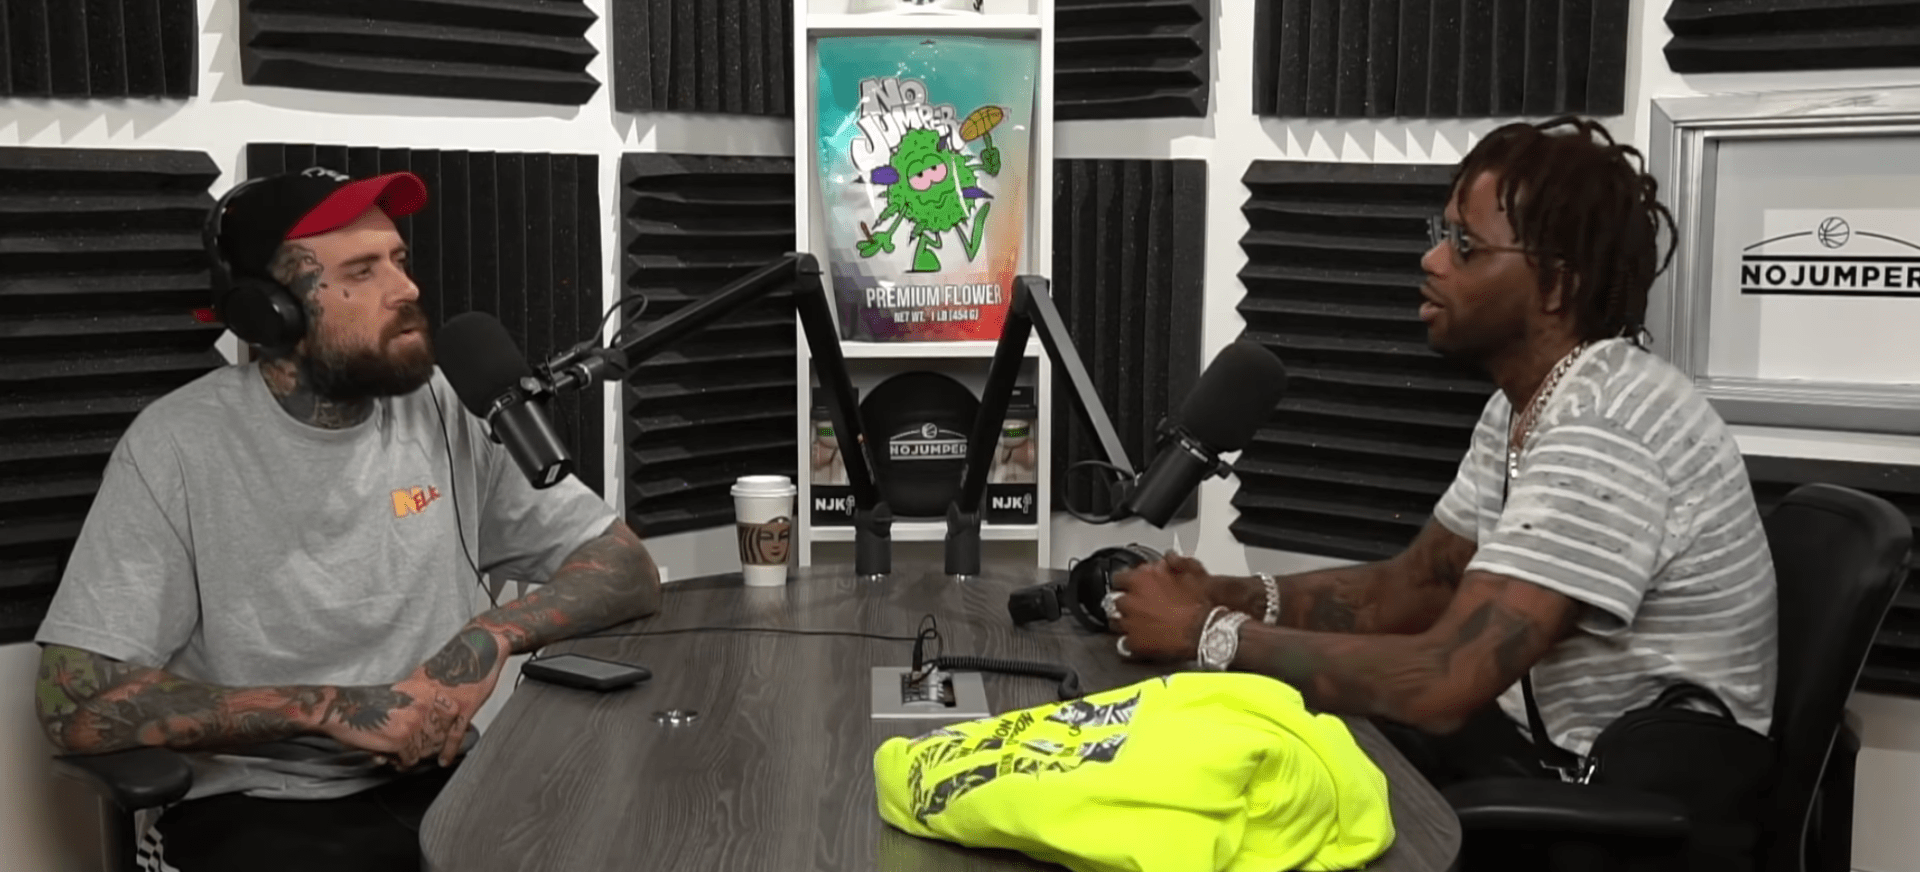 Hoodrich Pablo Juan Speaks On Q Da Fool, Goonew & Lil Dude Conflict